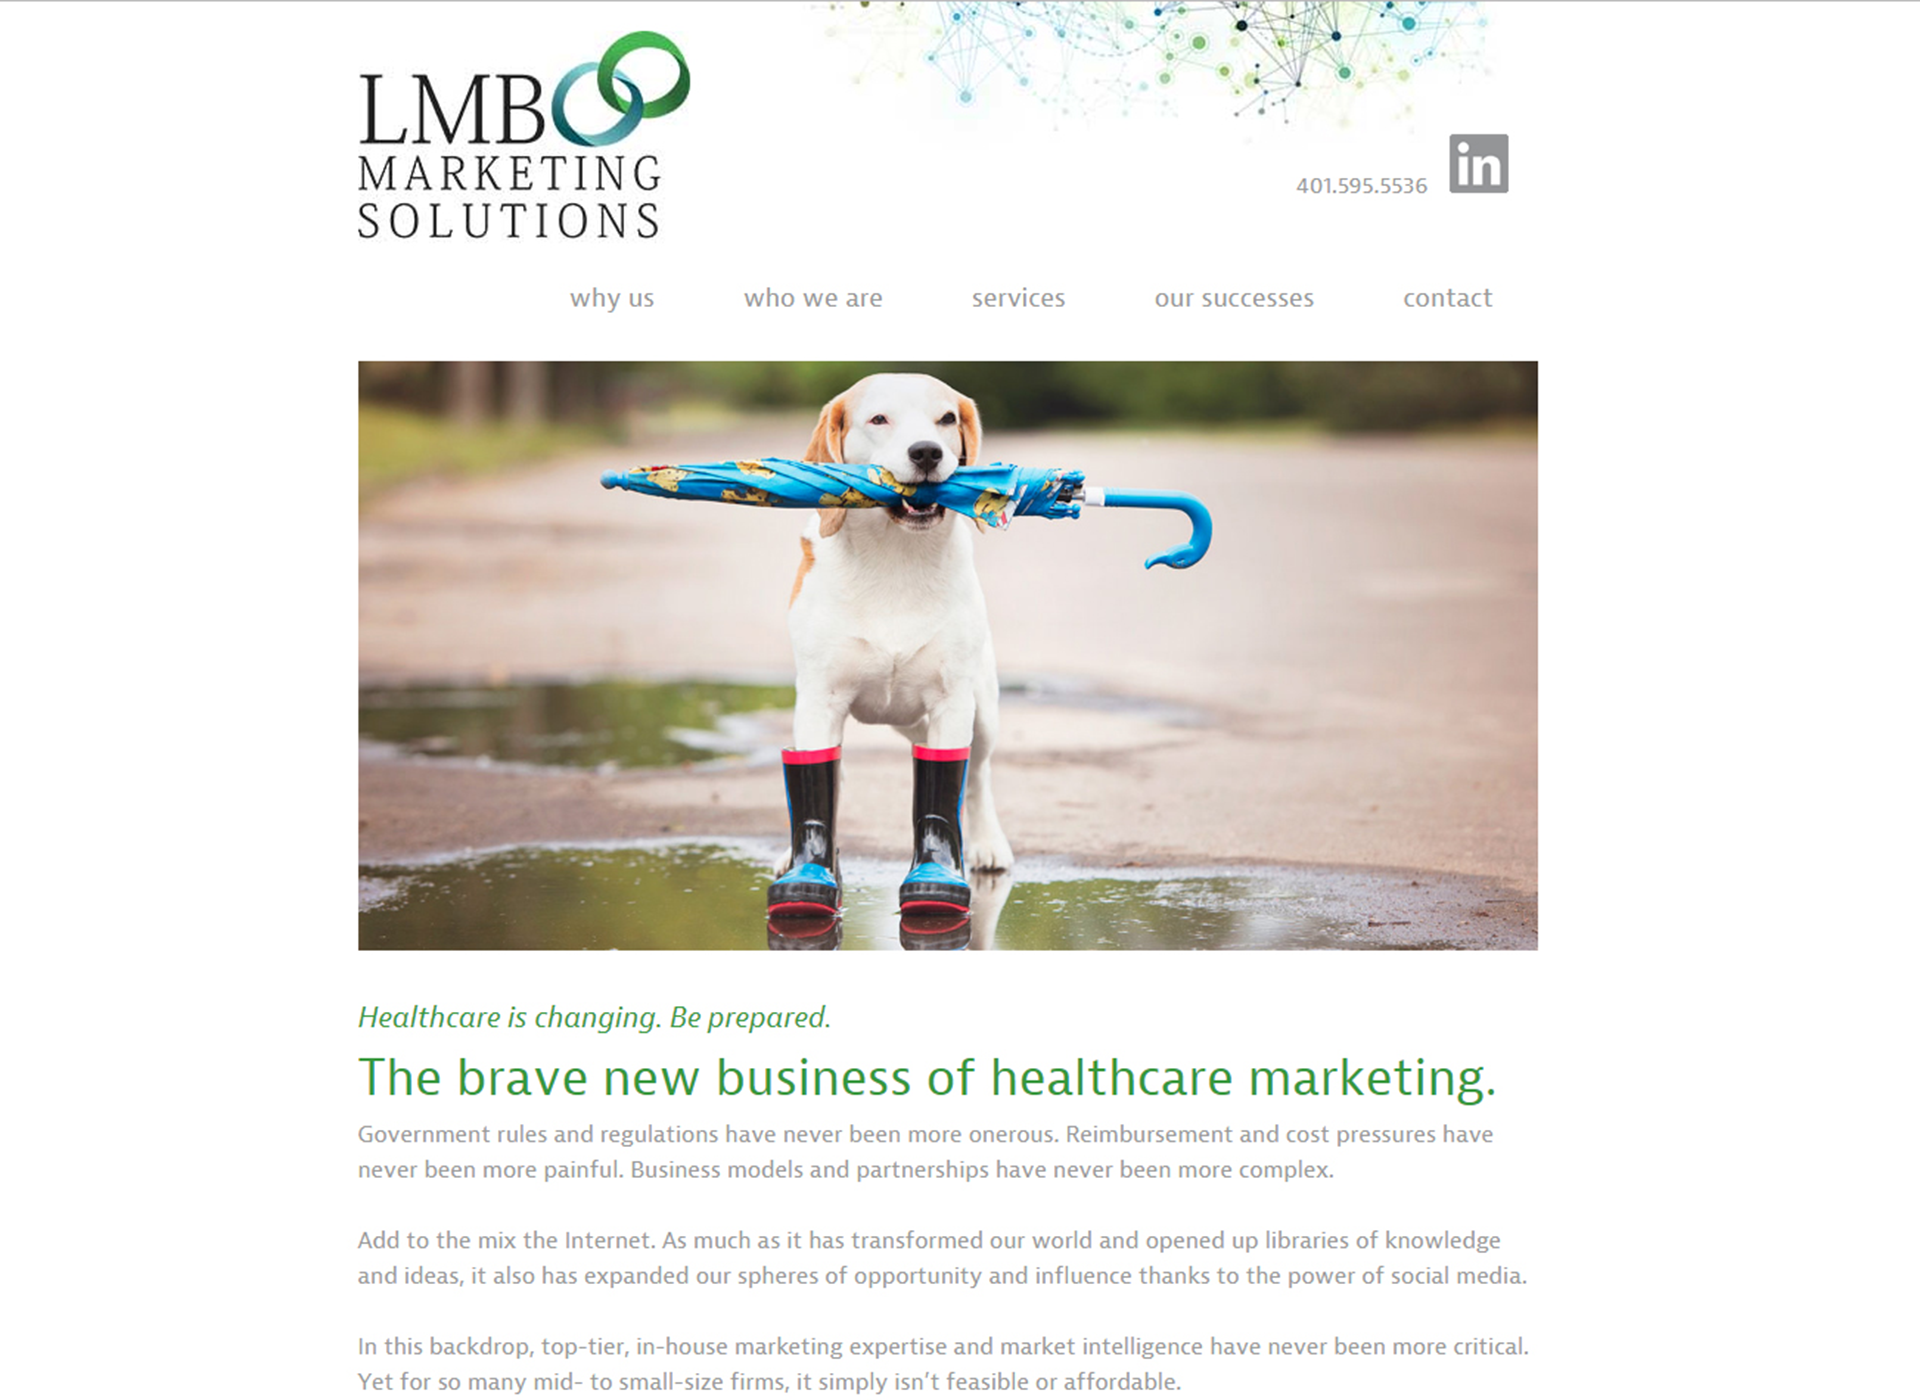 lmb_marketing